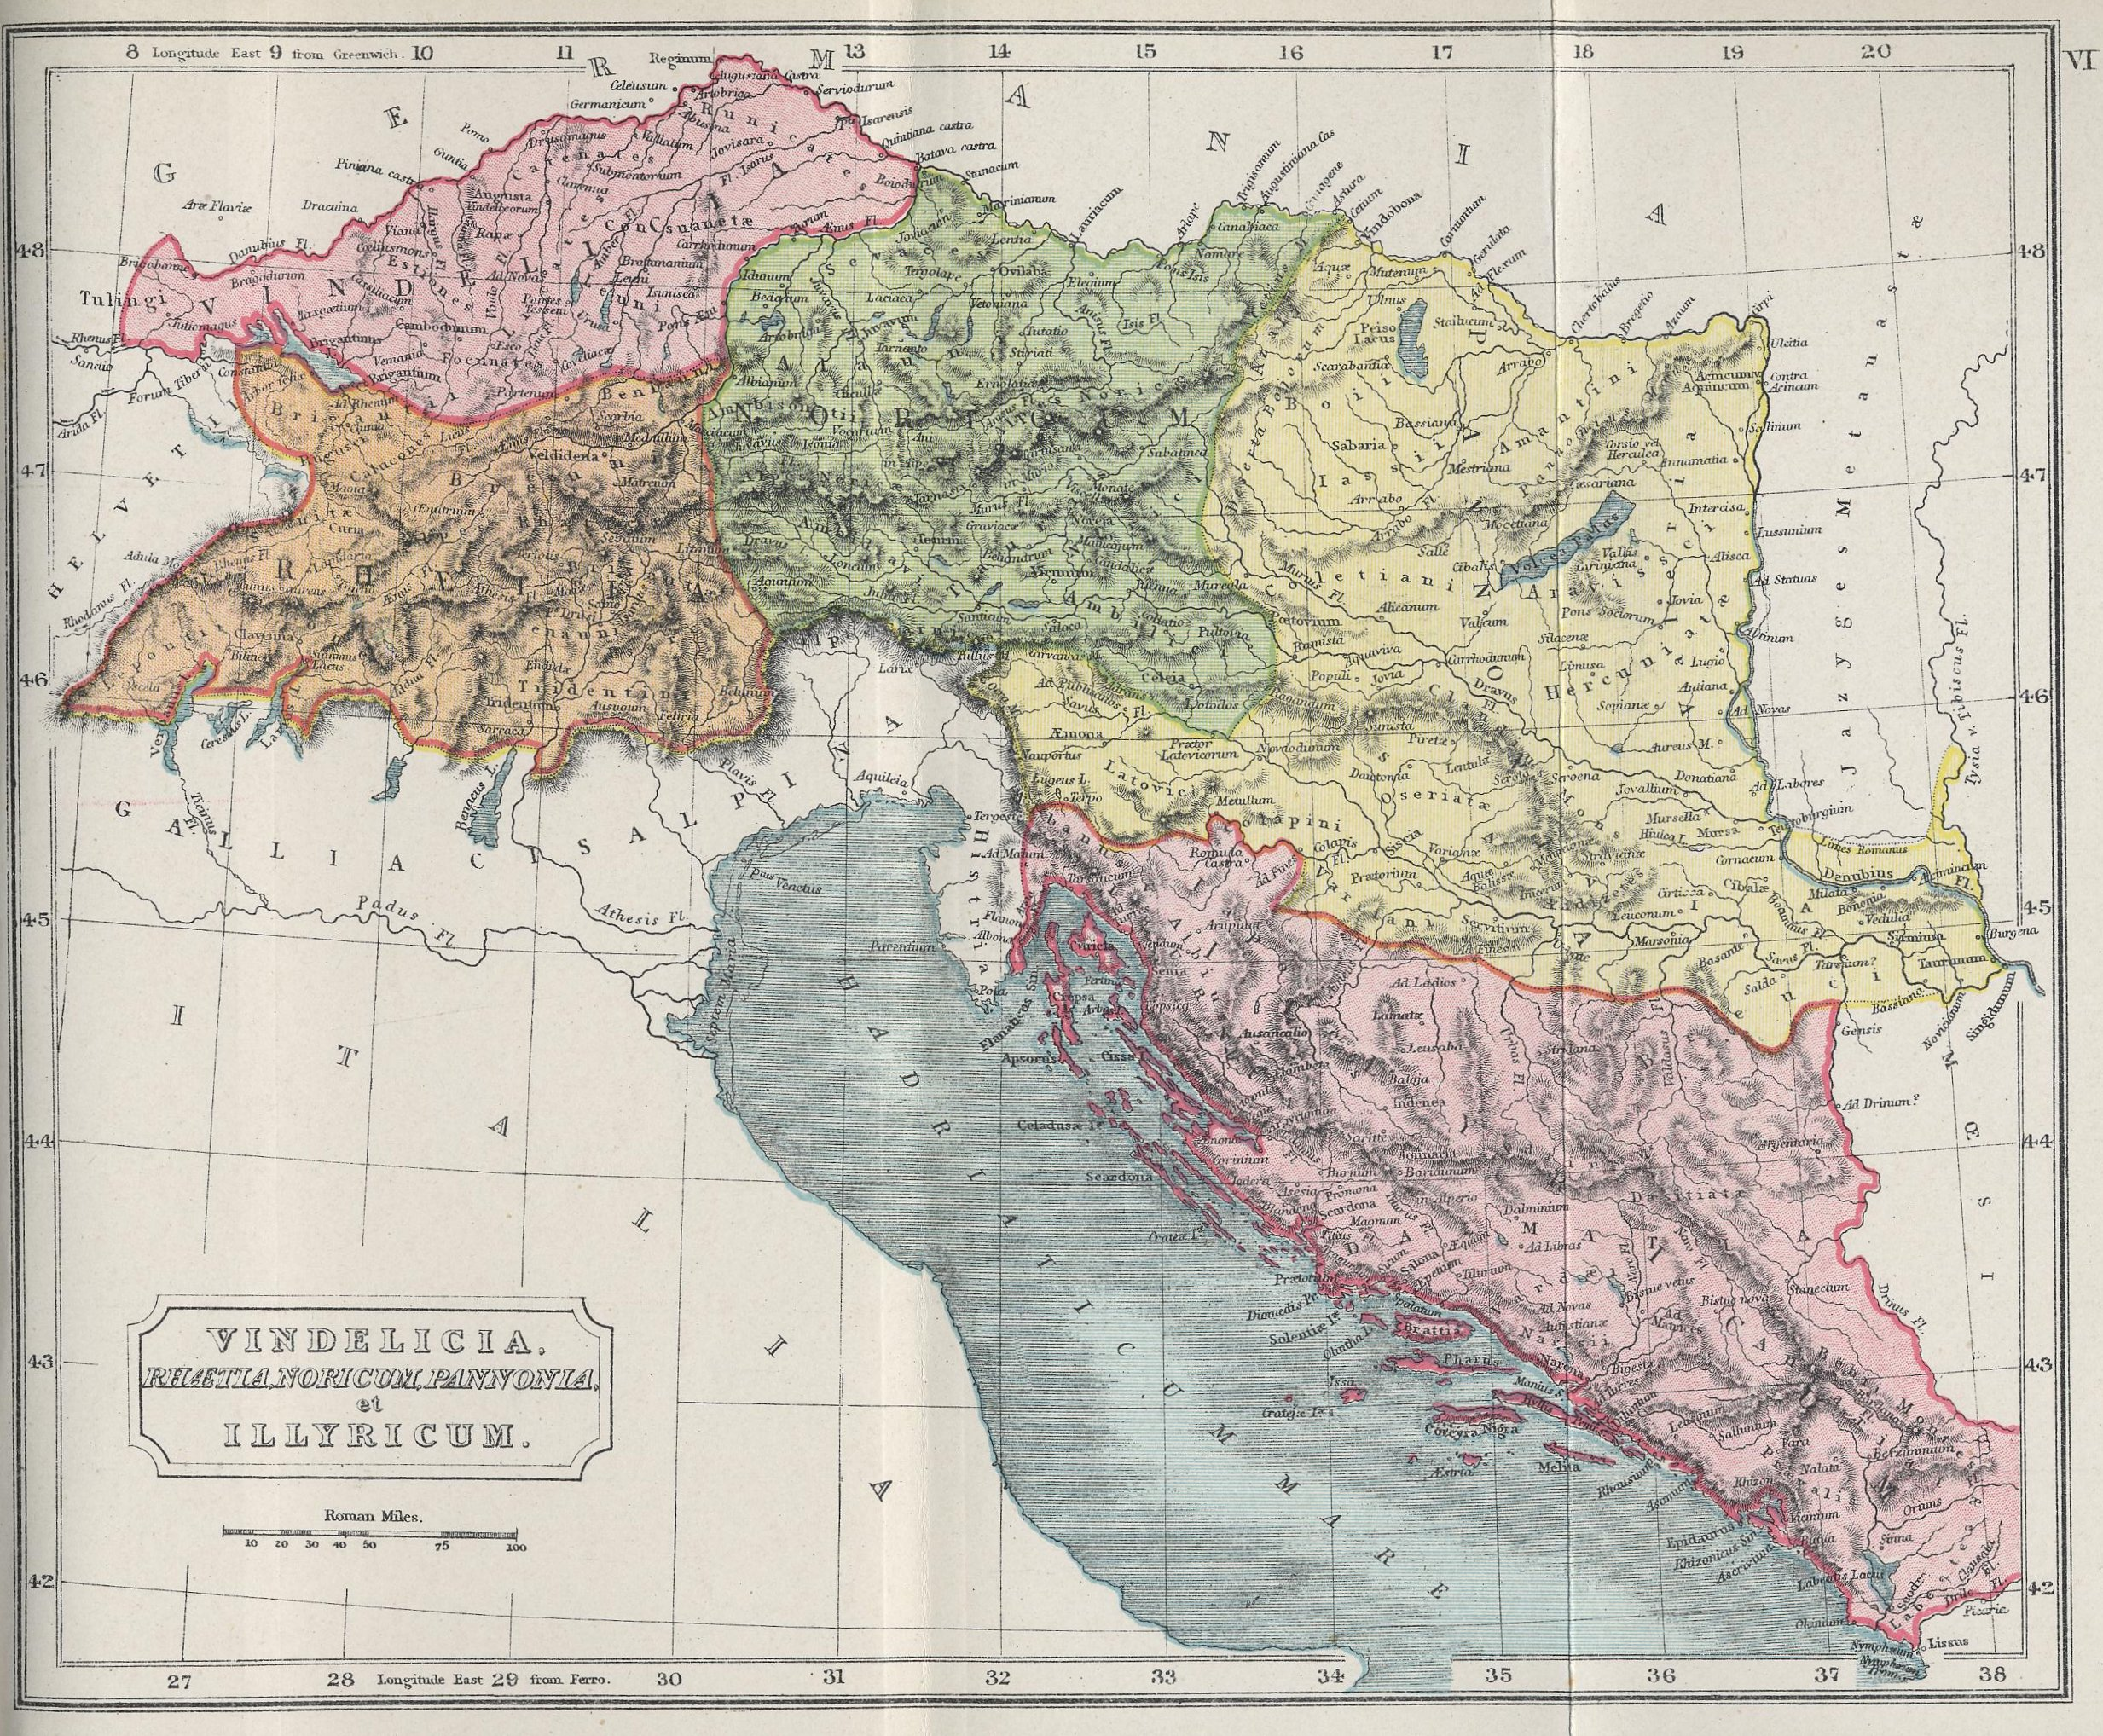 Map of Alpine Region and Western Balkans70 BC - AD 180